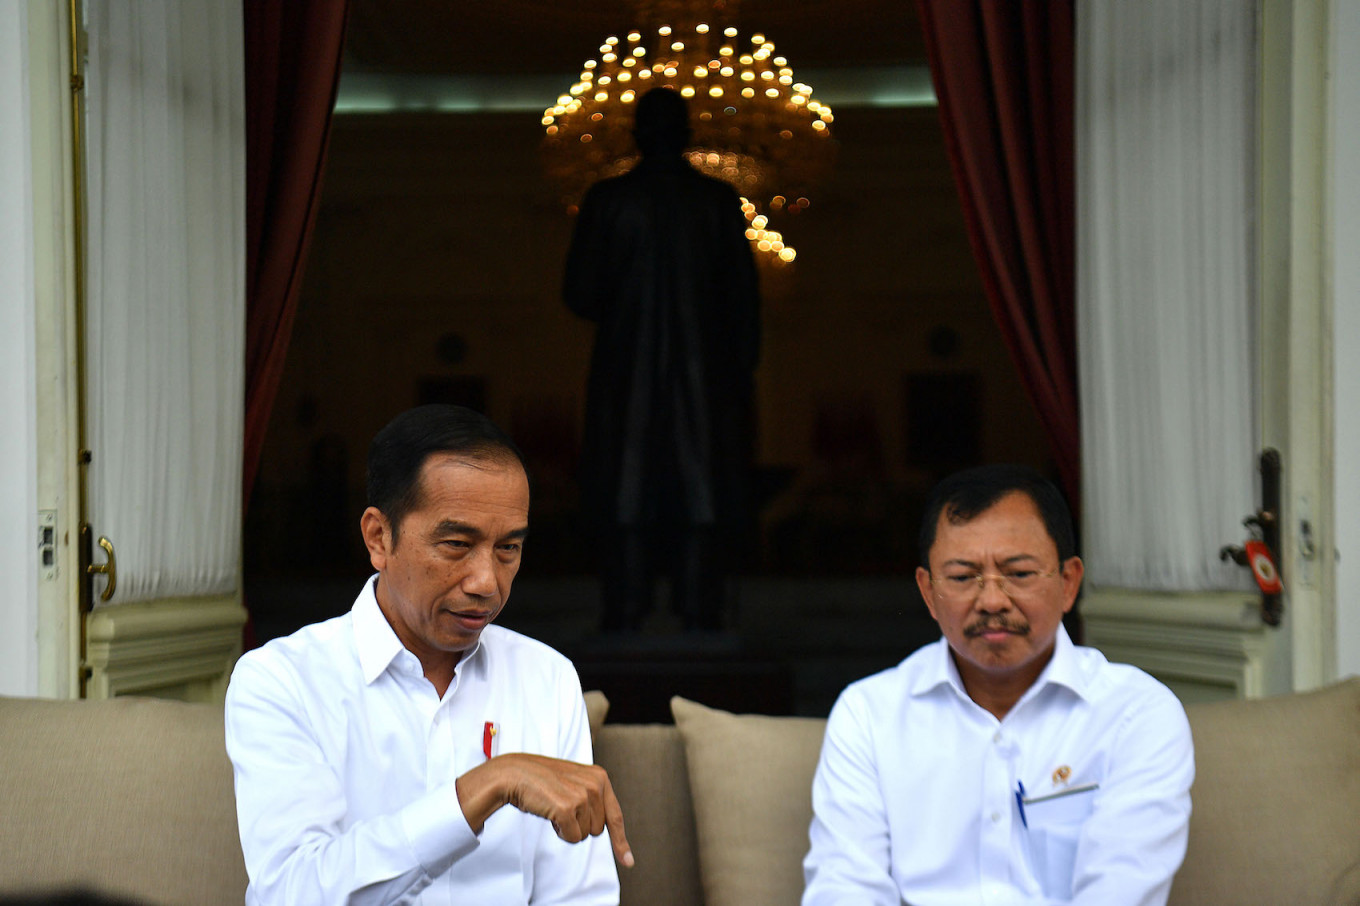 COVID-19: Business owners file class-action lawsuit against Jokowi, Terawan for negligence